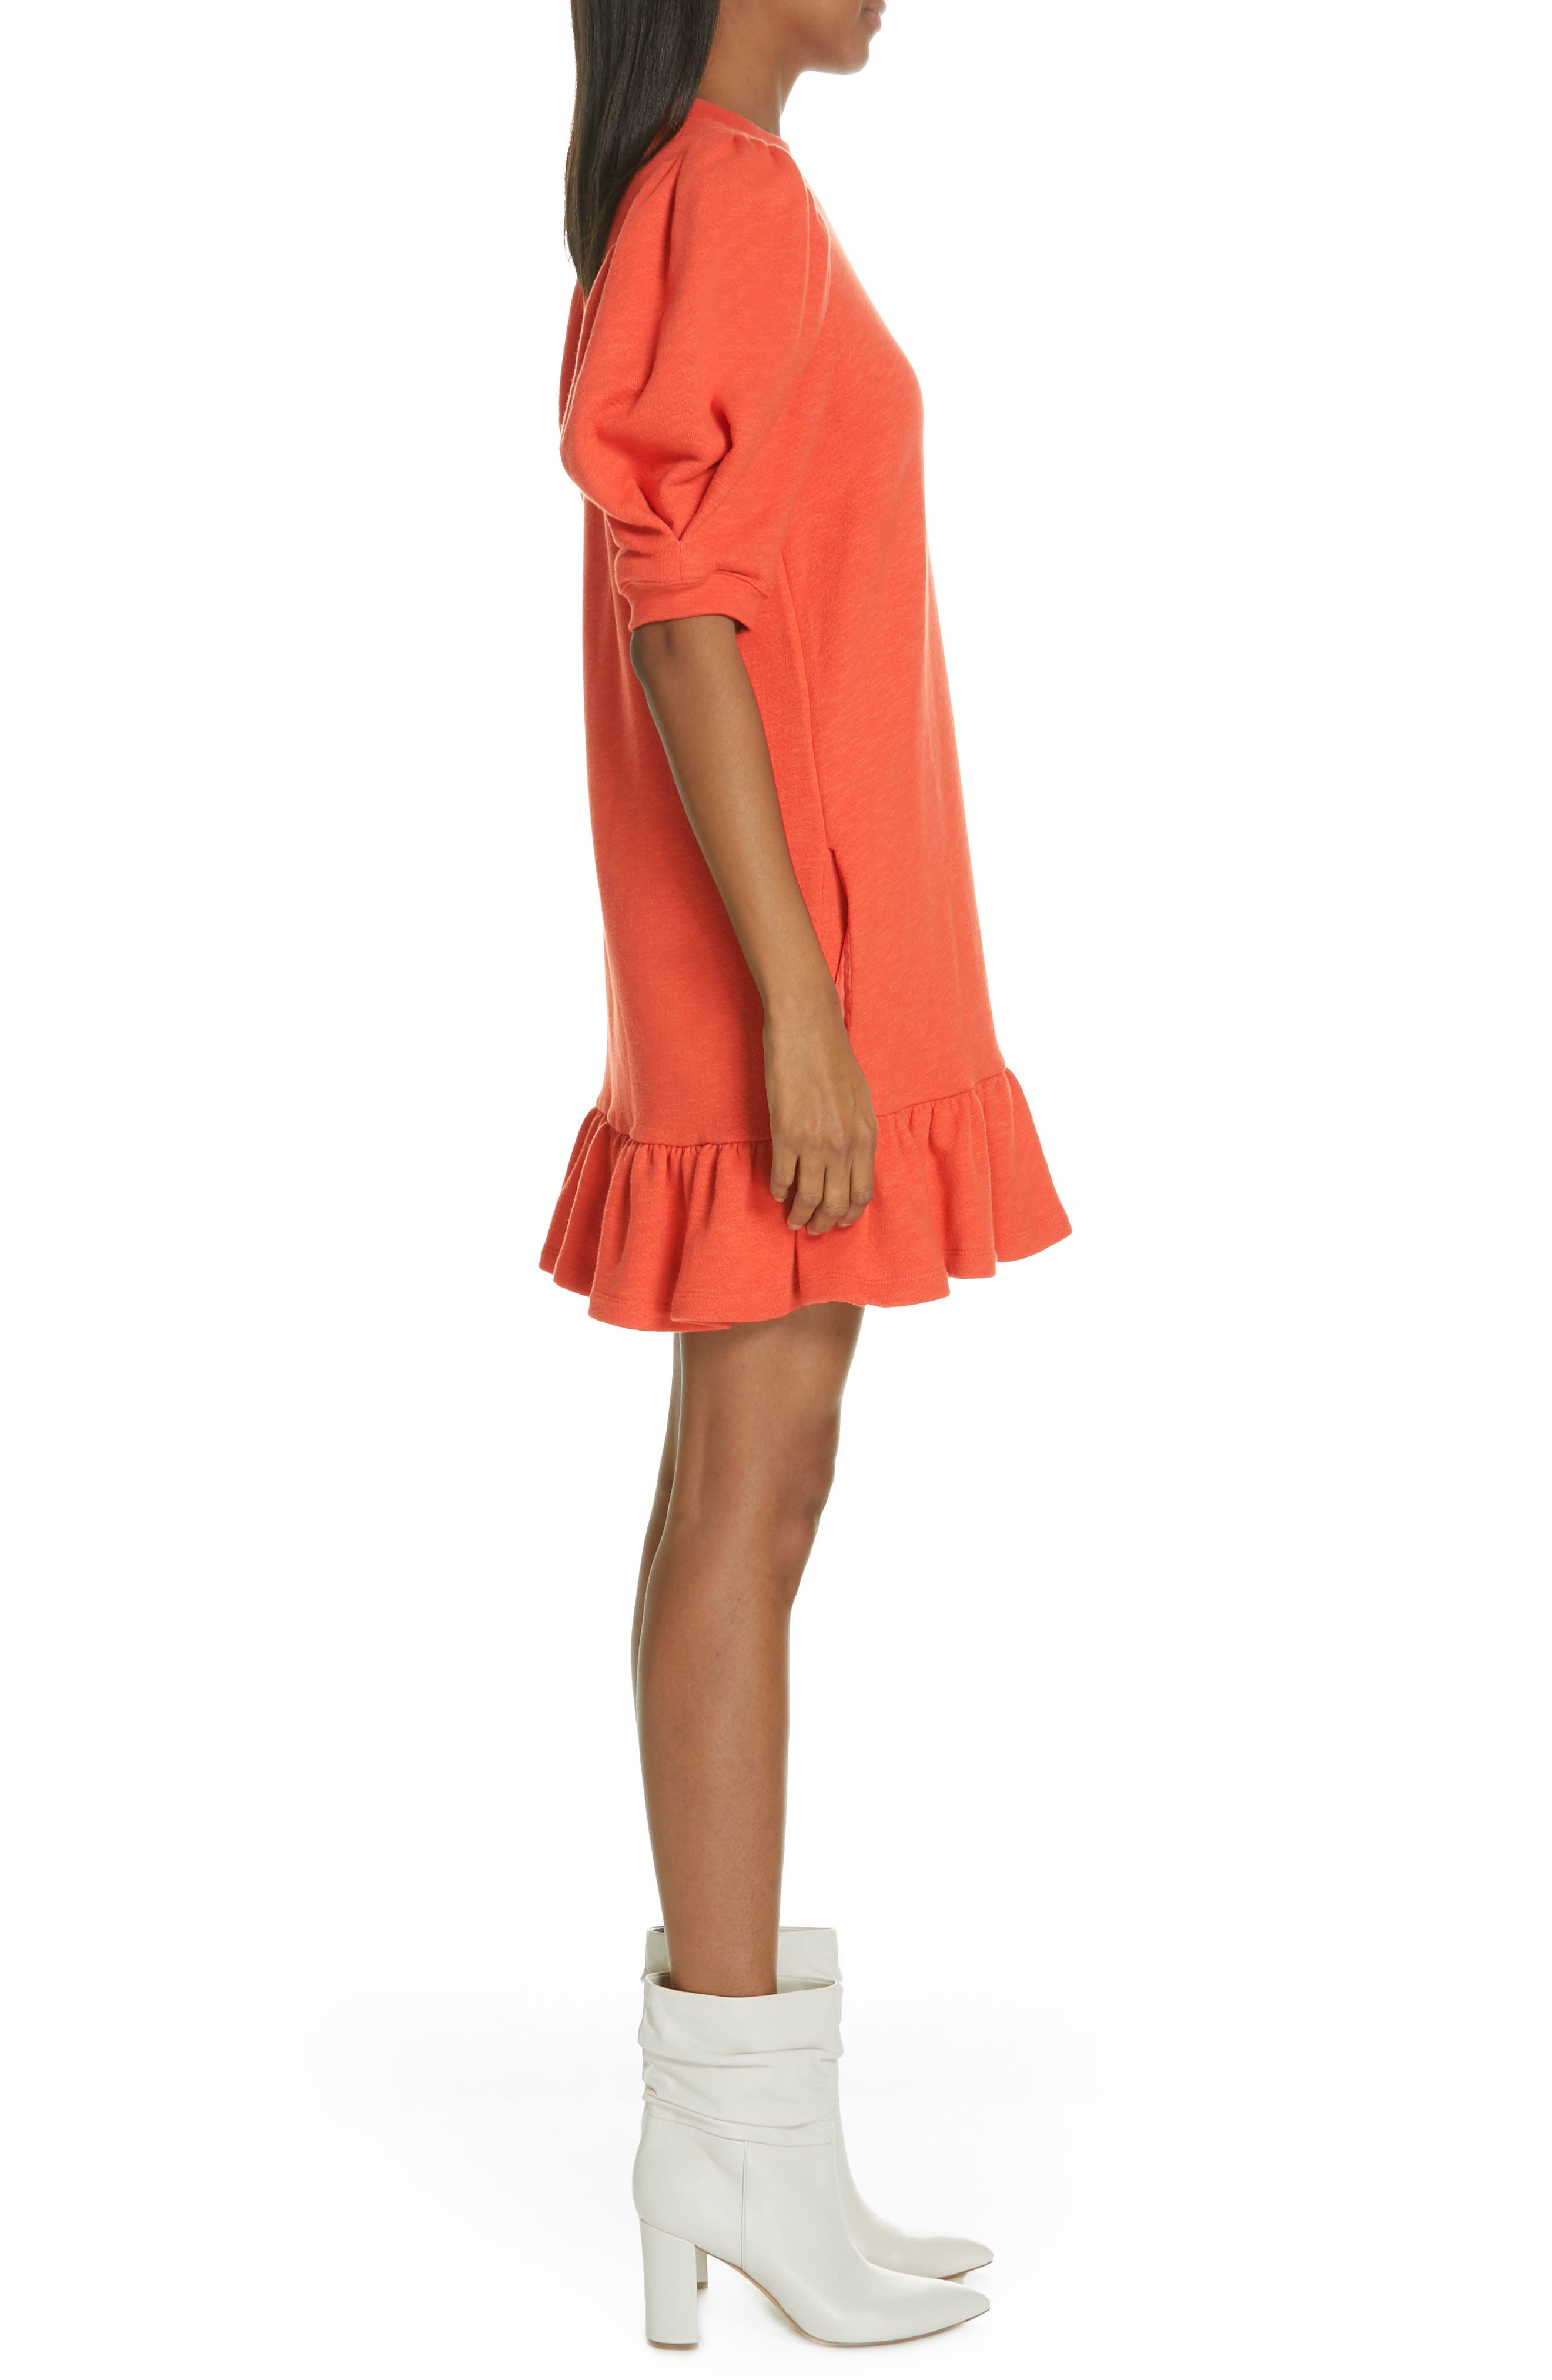 ULLA JOHNSON, Landry Puff Sleeve Sweatshirt Dress, Alternate thumbnail 3, color, CHILI